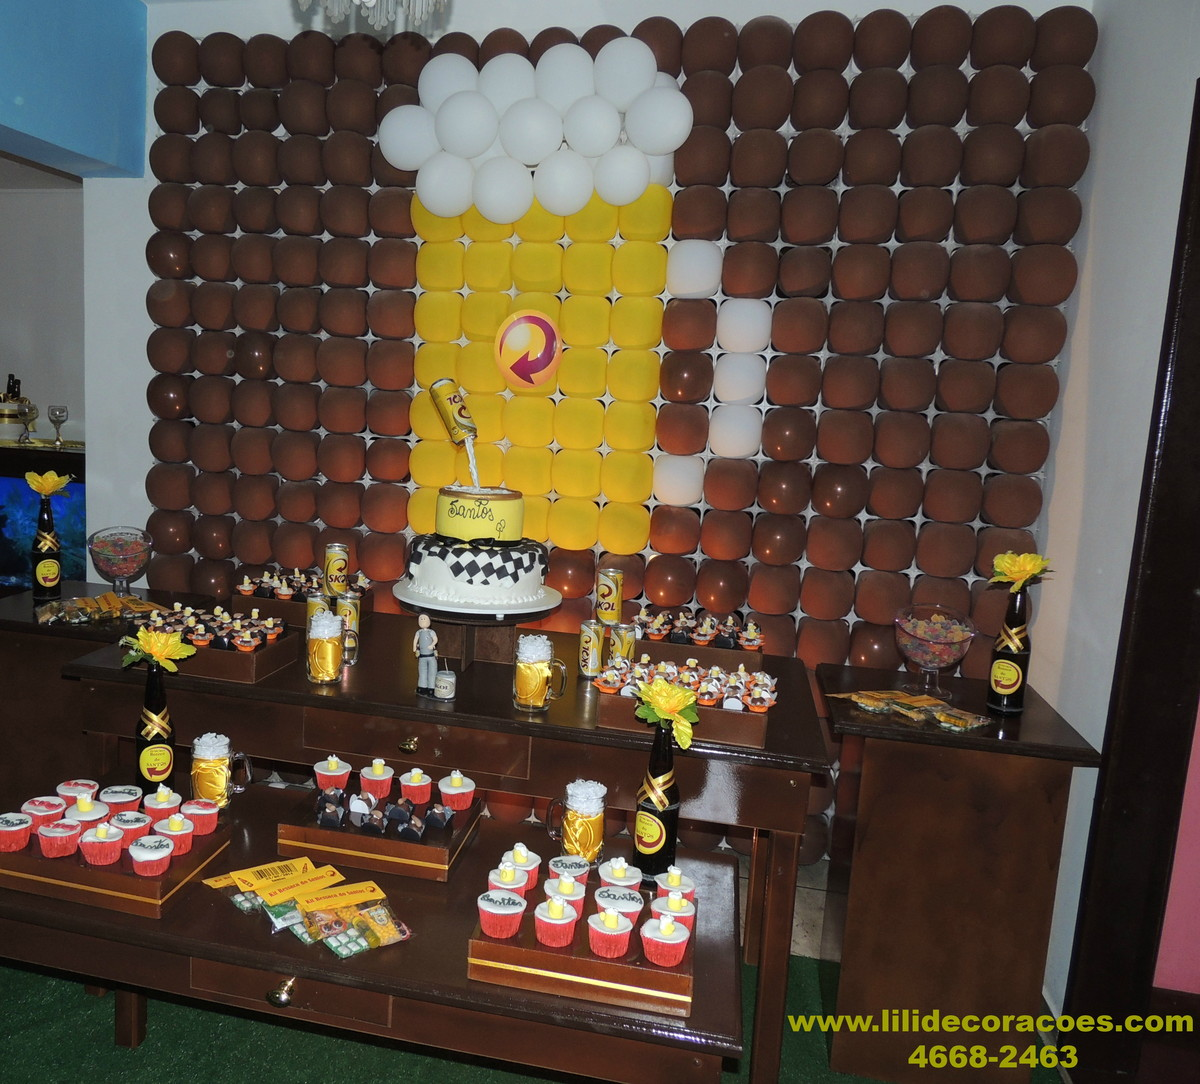 decoracao boteco skol:skol para adulto decoracao tema skol para adulto decoracao tema skol